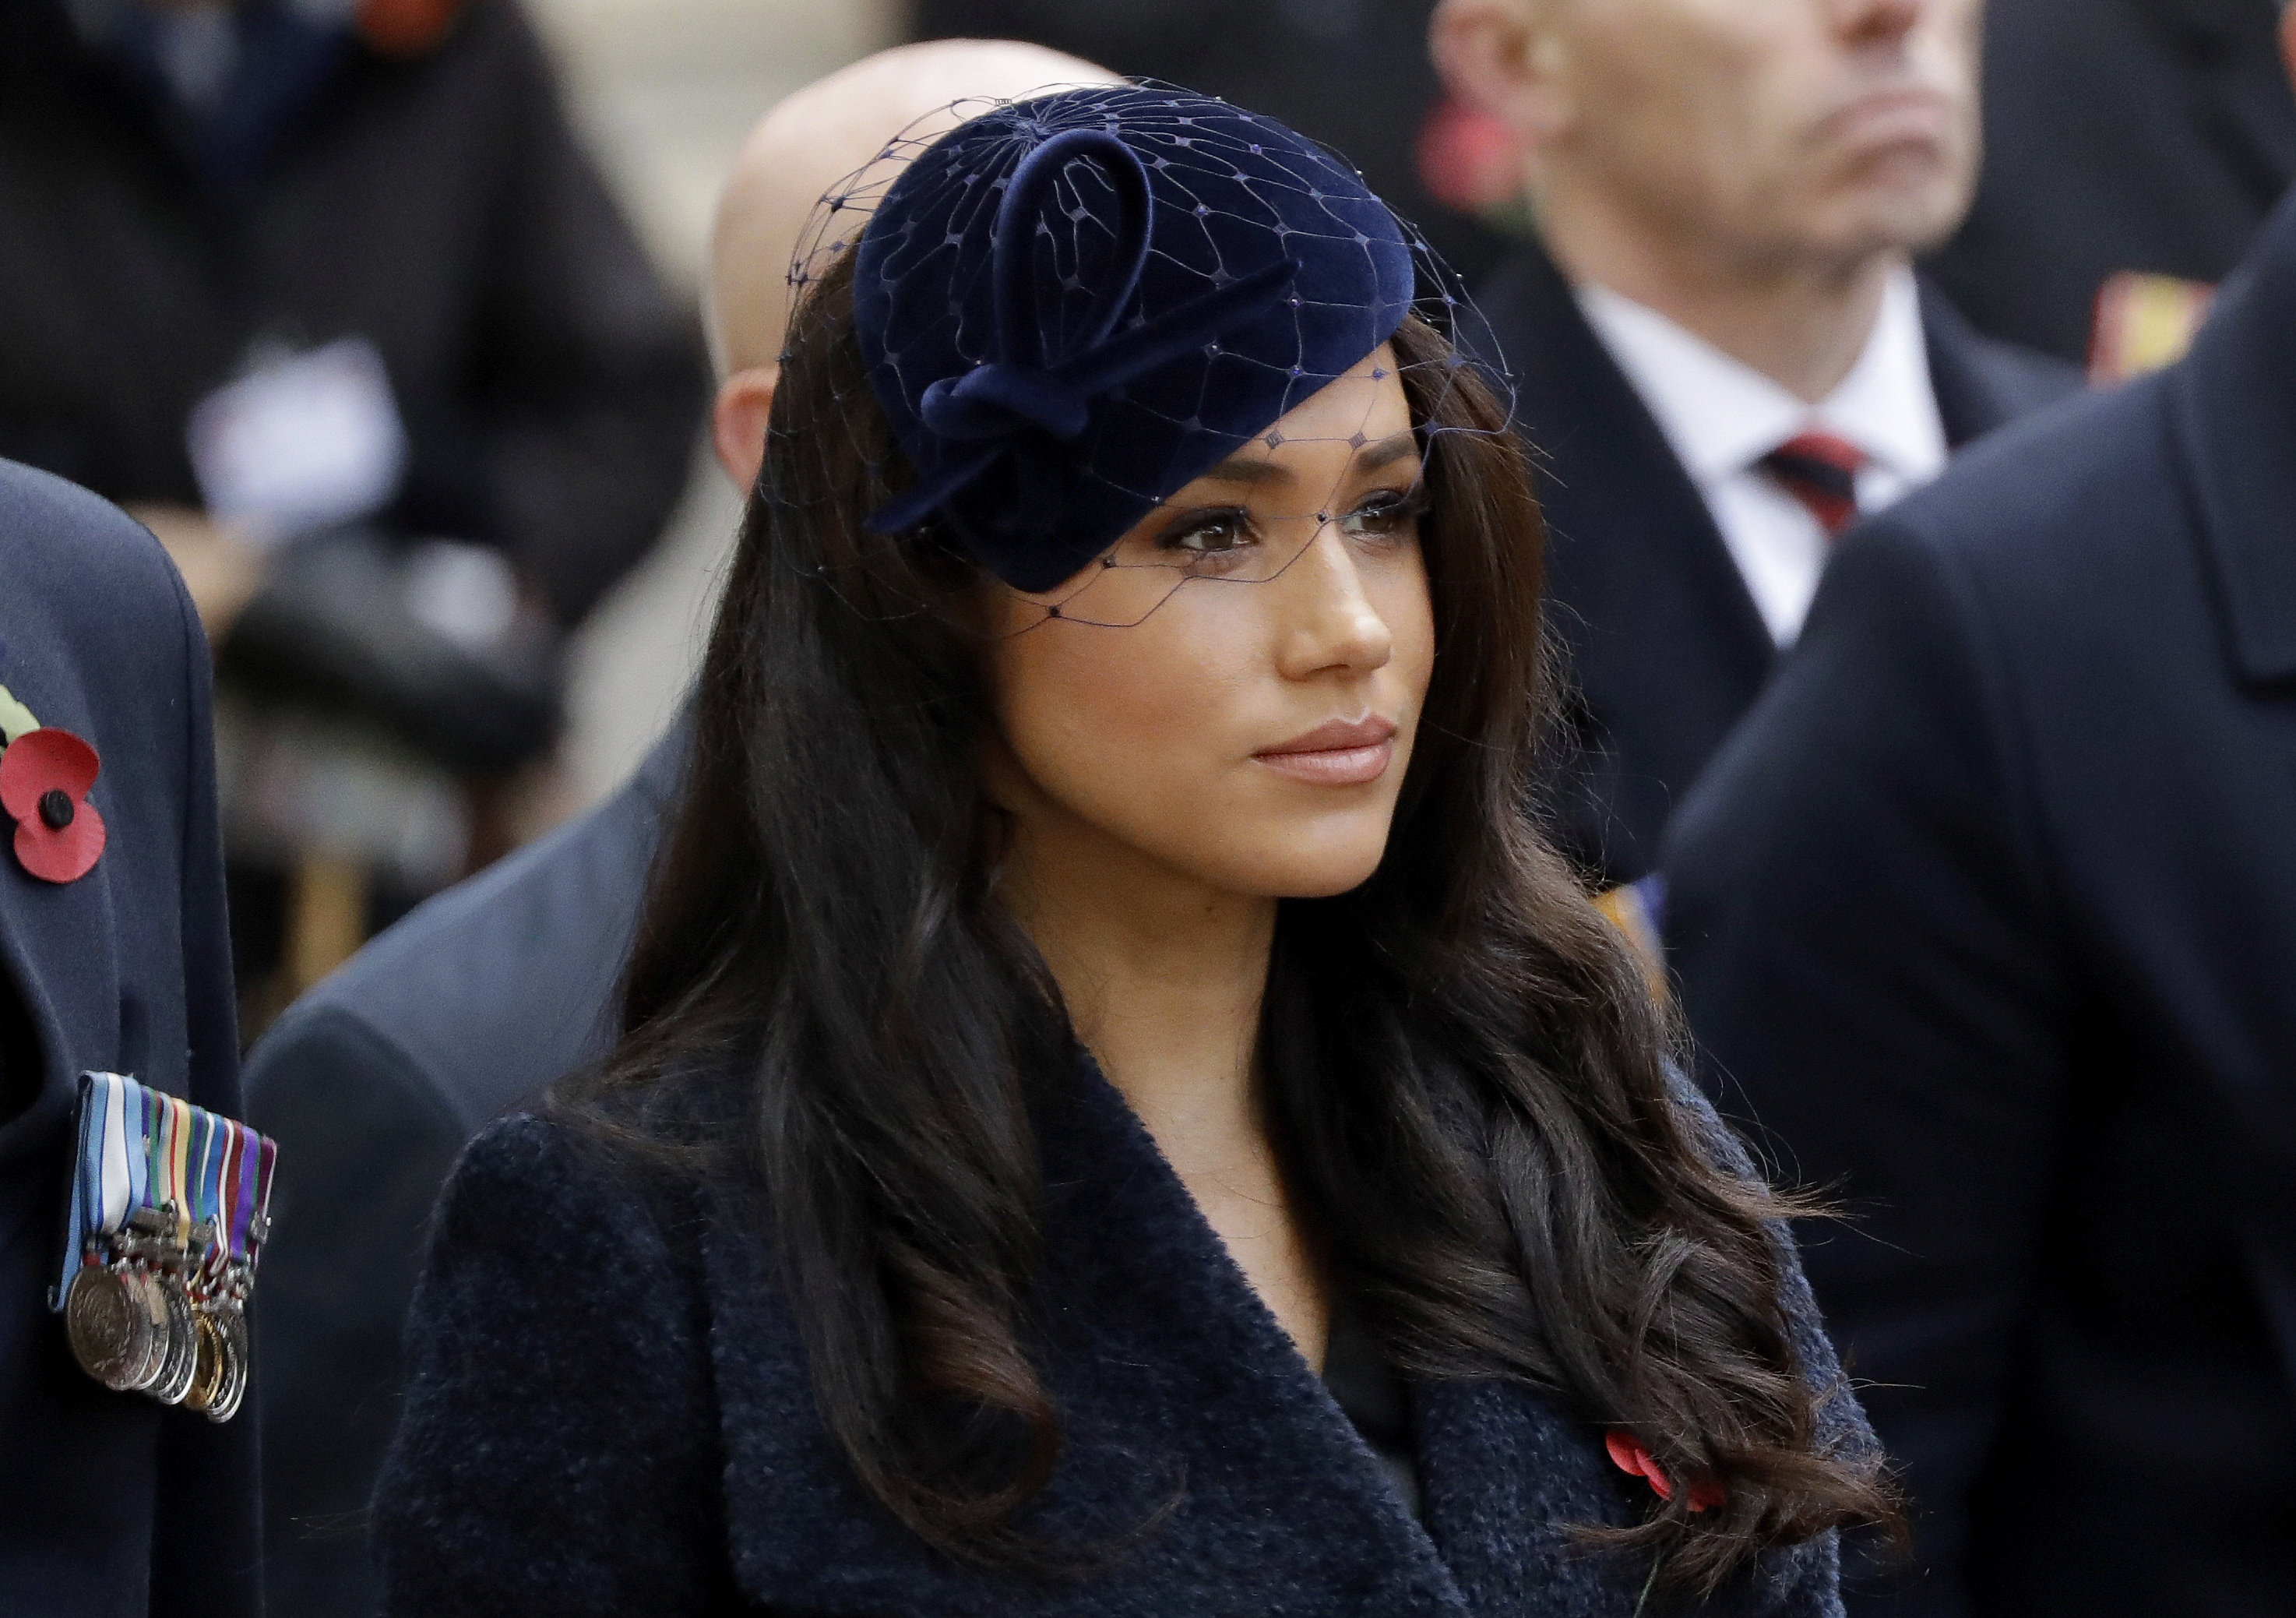 Meghan Markle Demands £1.5 Million In Costs And A Front-Page Apology From Associated Newspapers After Privacy Case Win